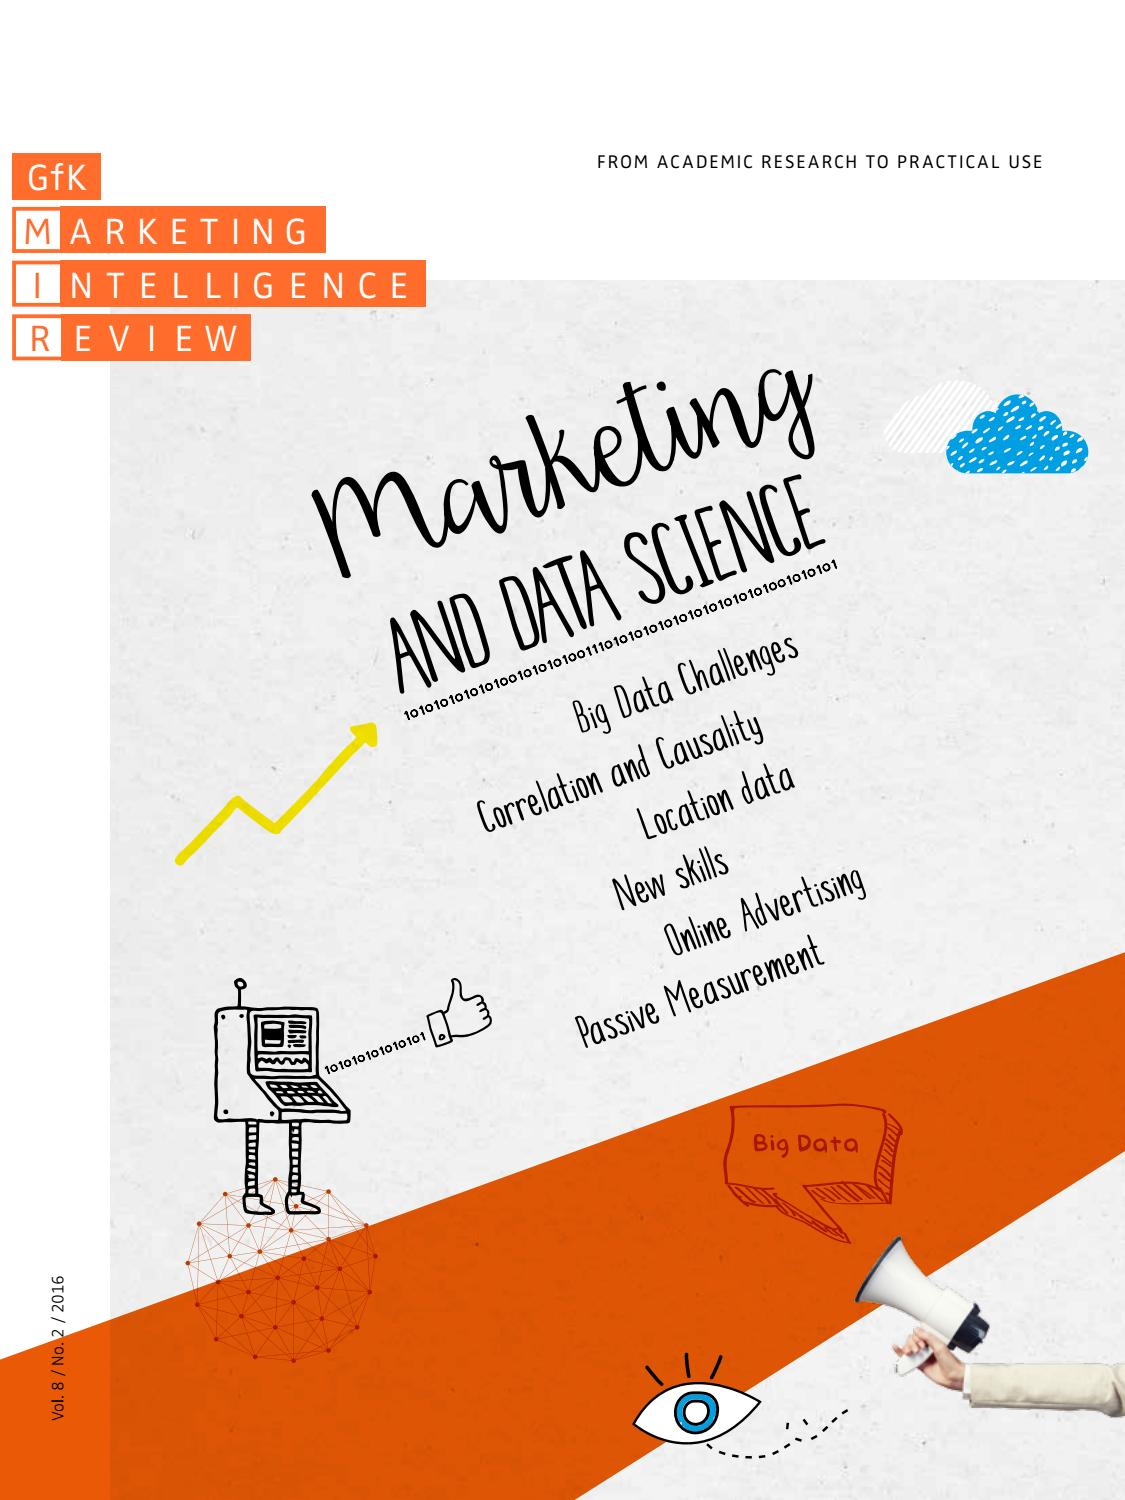 Marketing and Data Science Vol. 8 No. 2 (2016) by GfK MIR ...